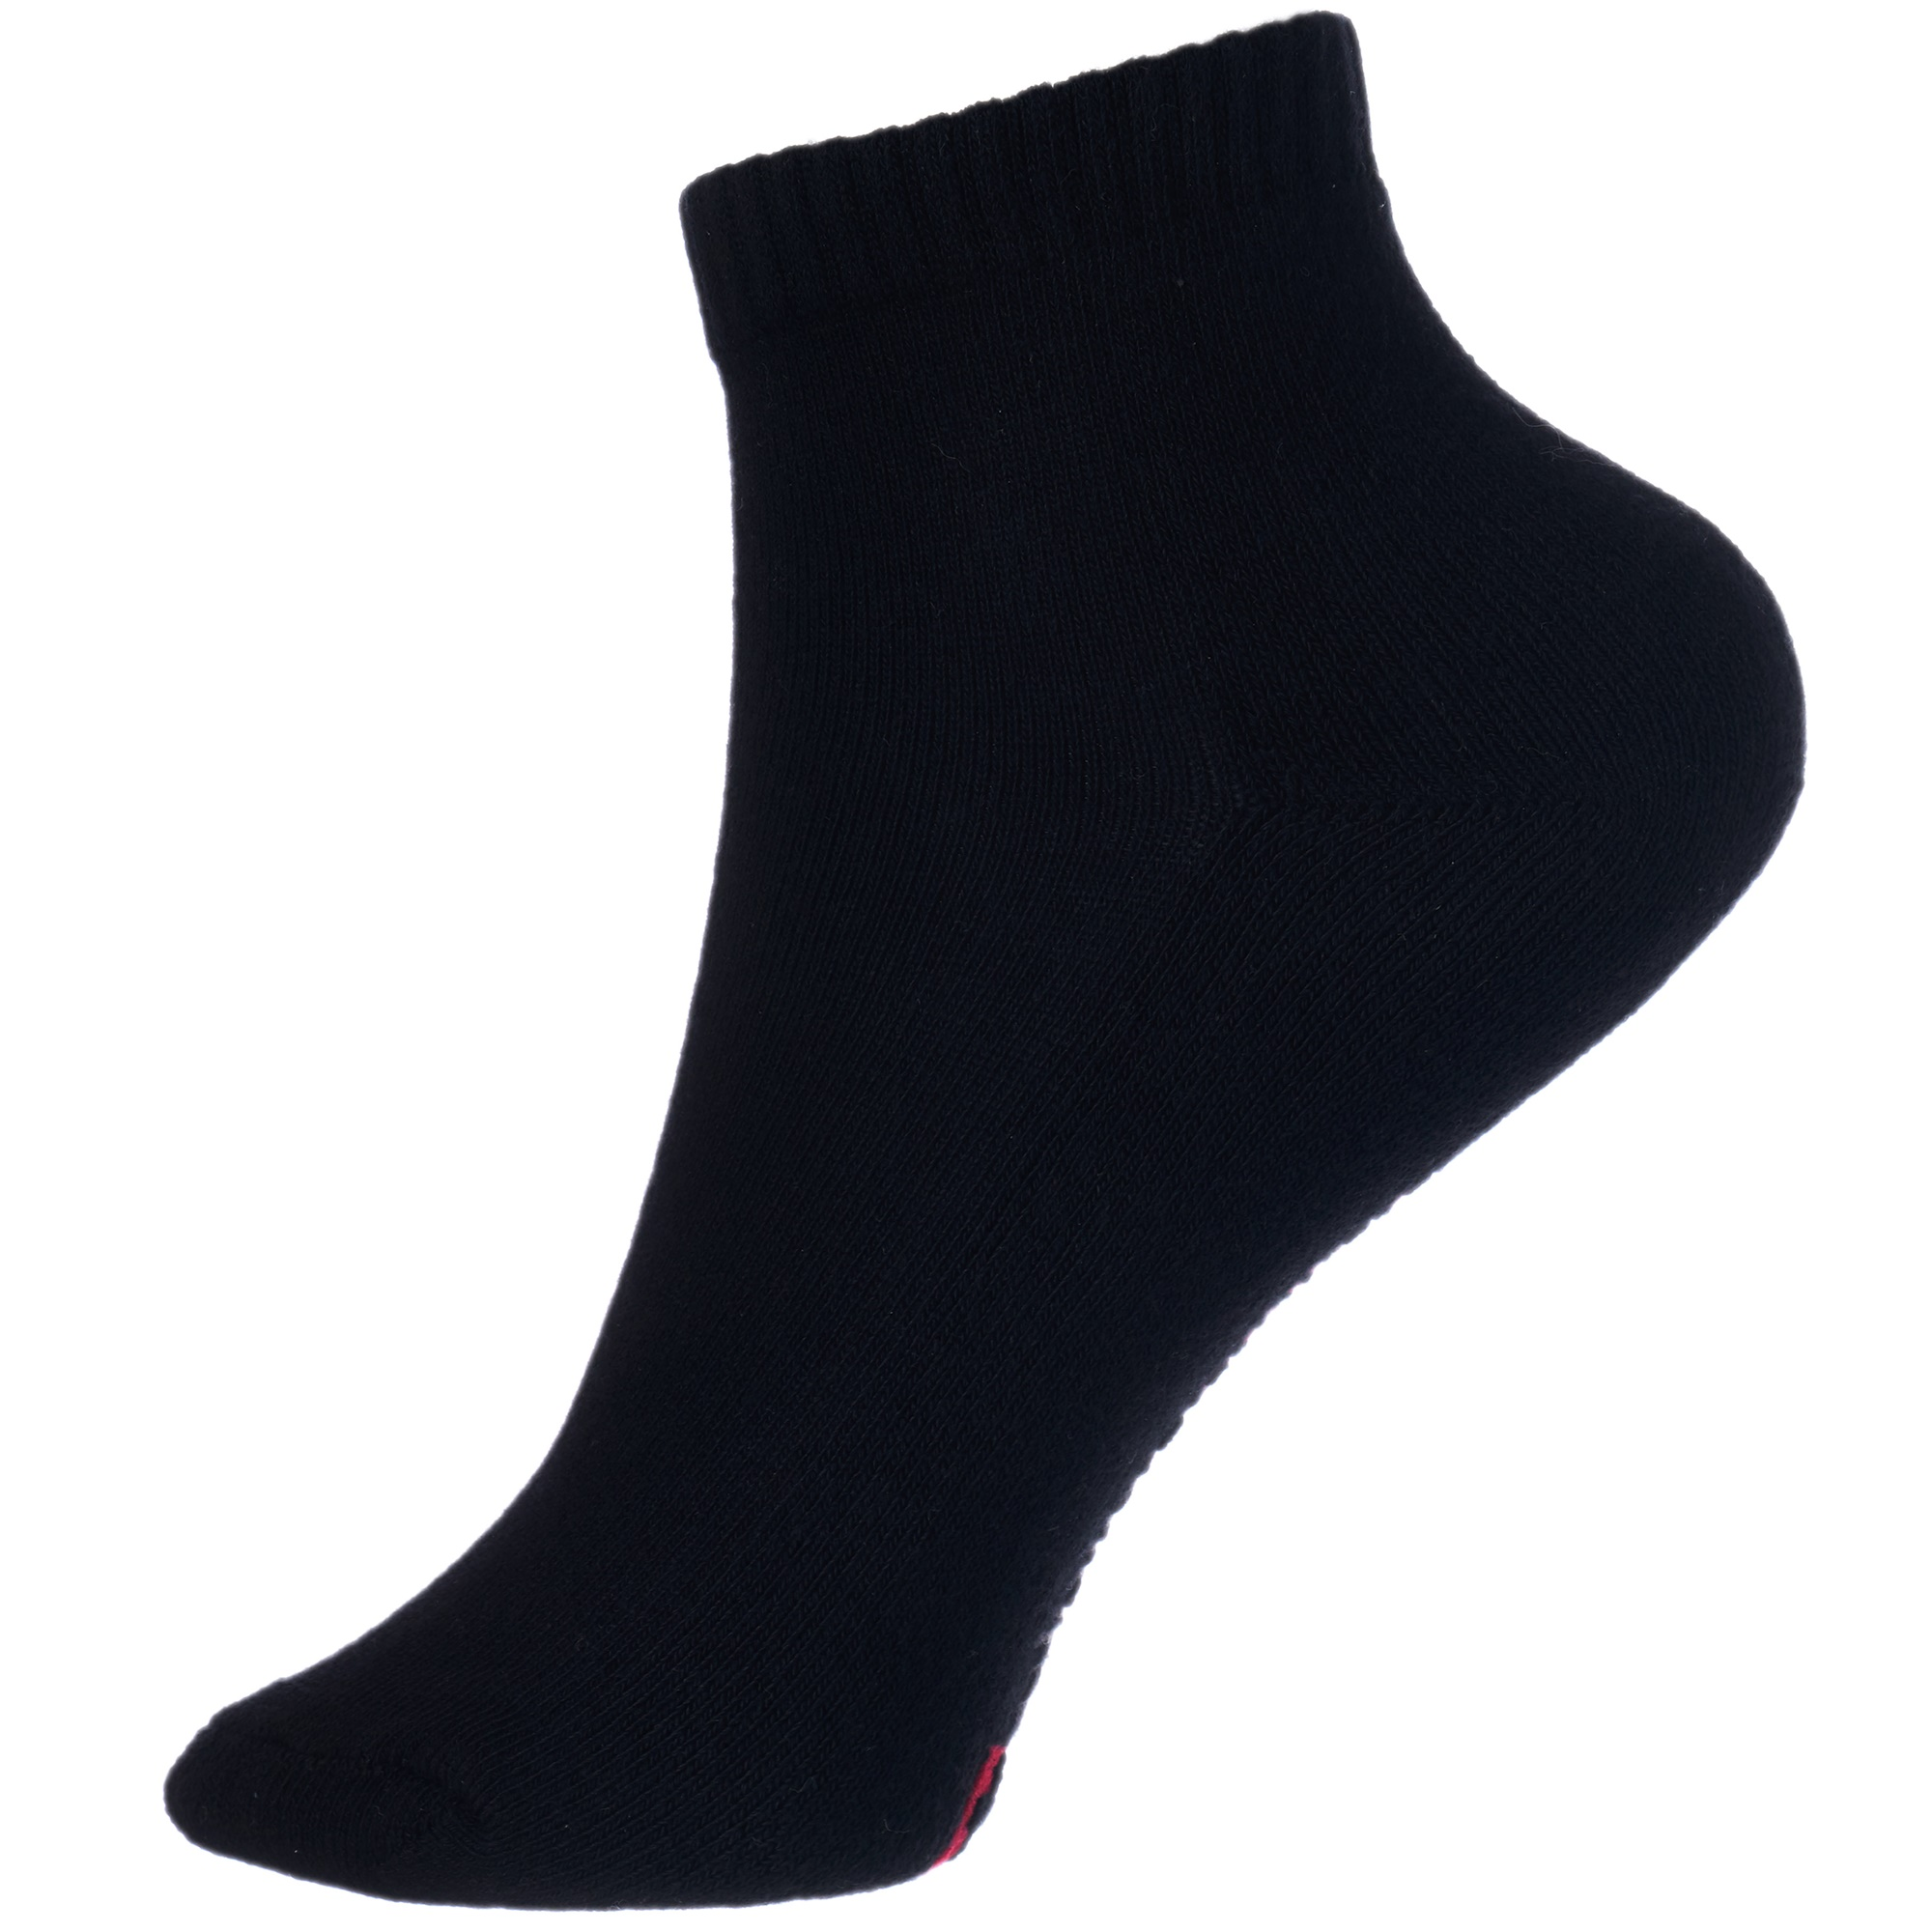 Alpine-Swiss-Mens-8-Pack-Ankle-Socks-Low-Cut-Cotton-Athletic-Sock-Shoe-Size-6-12 thumbnail 11